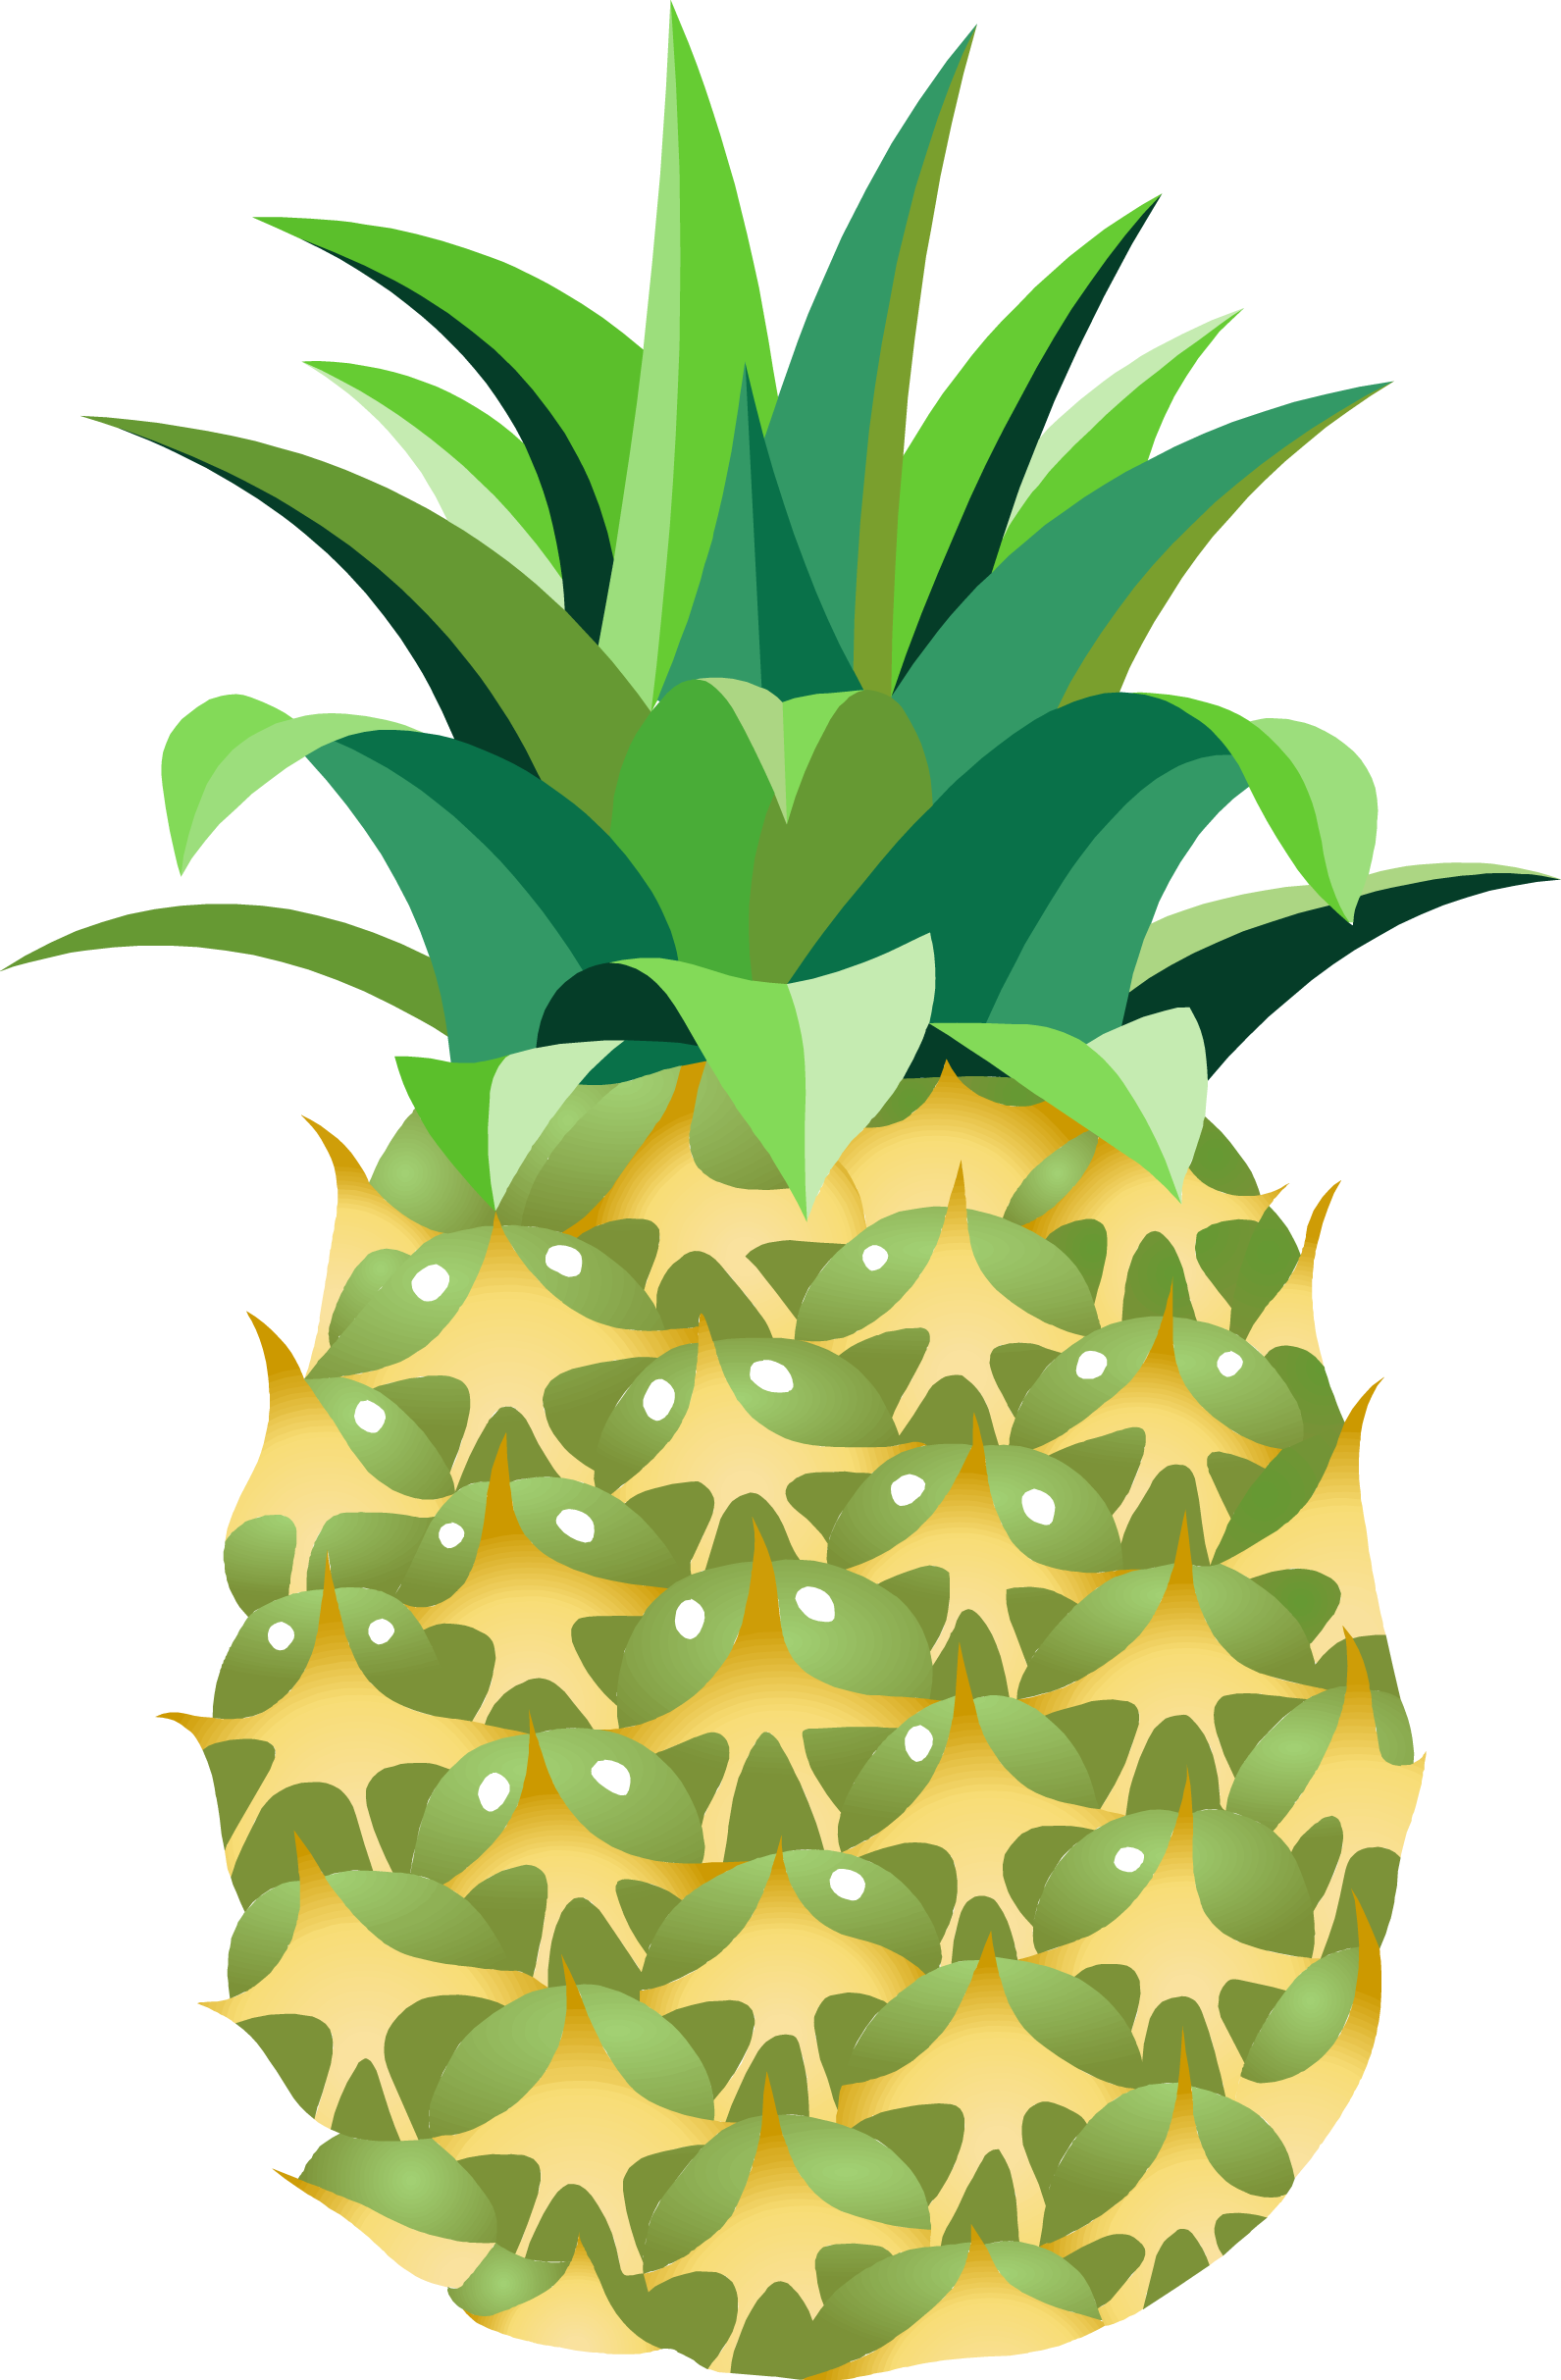 Clipart pineapple high quality. Png web icons download